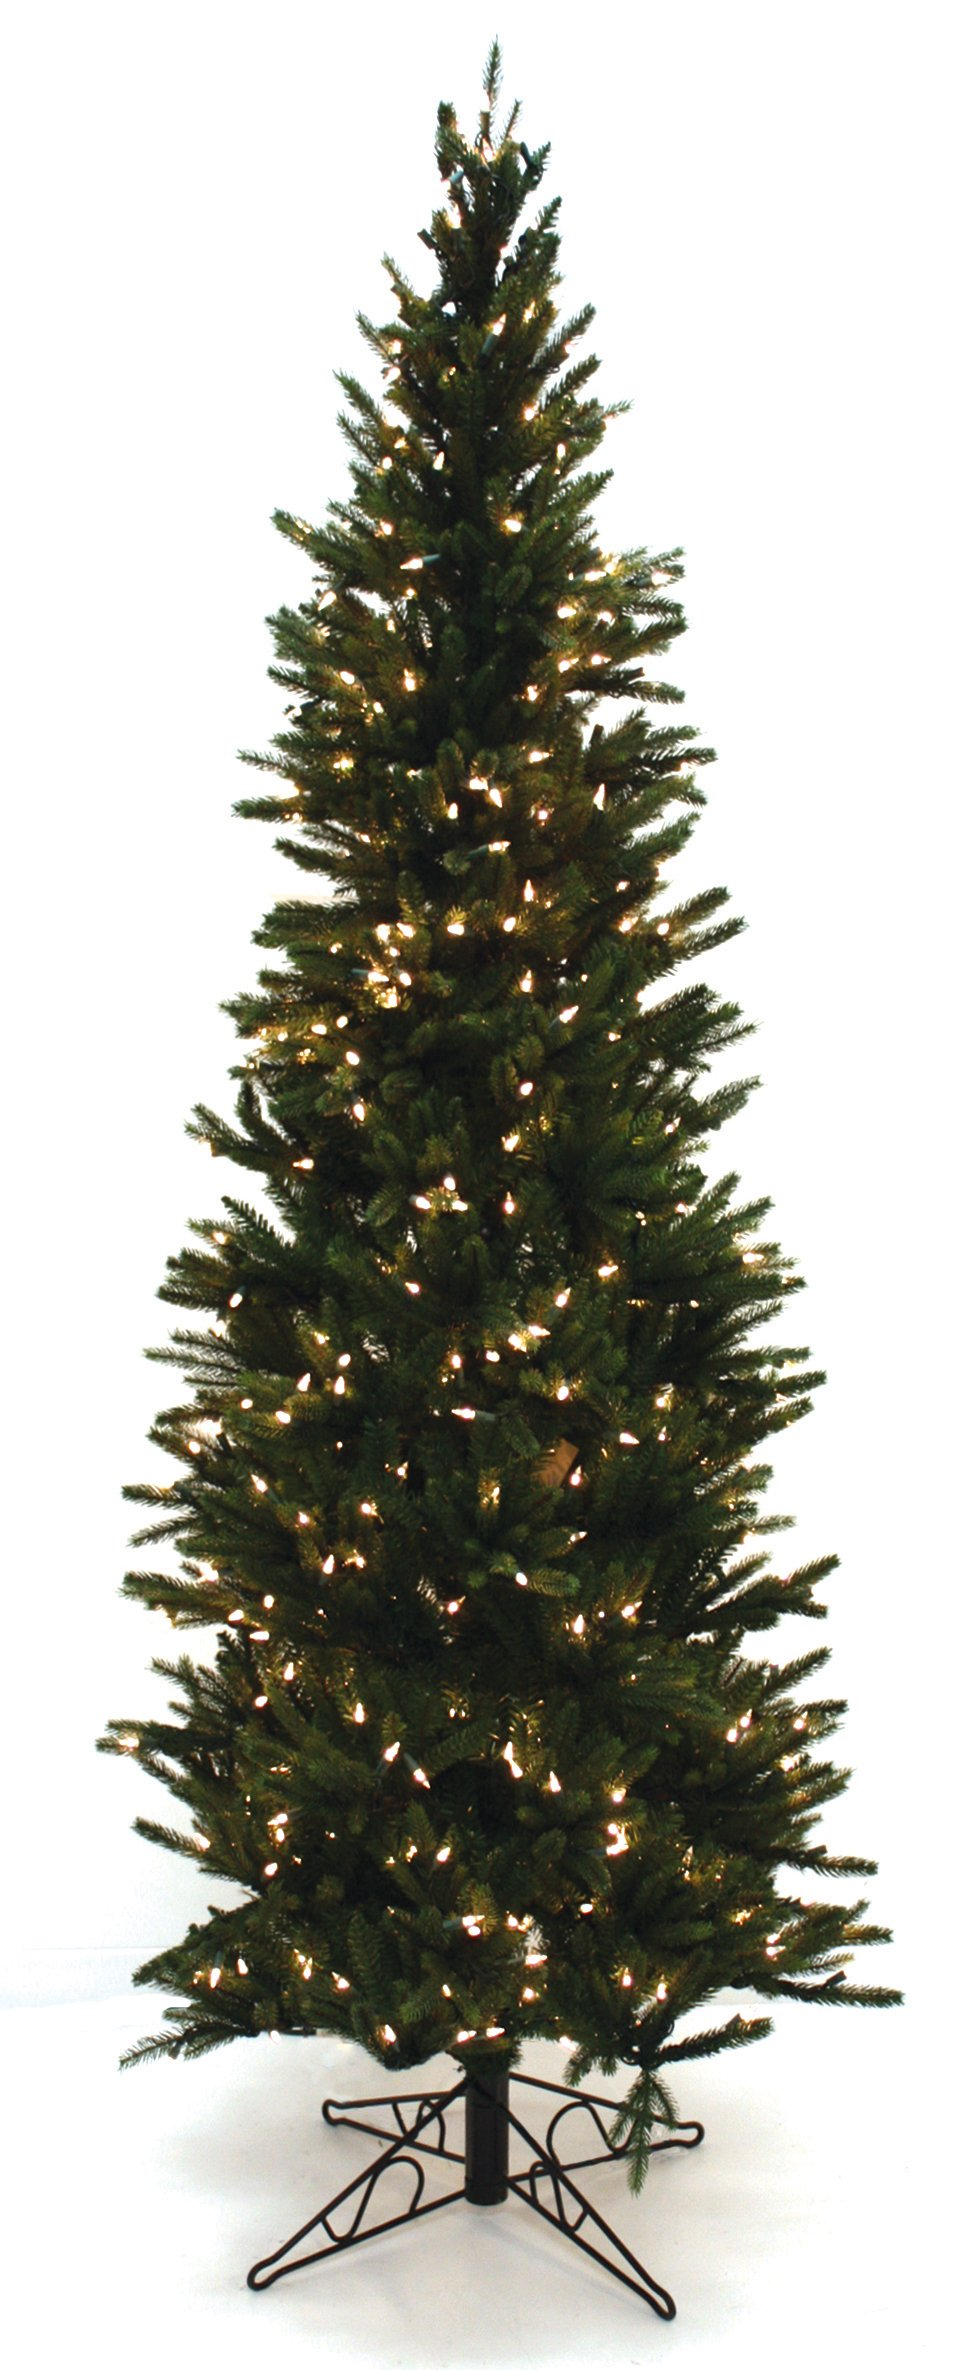 Special Happy Corp LTD Oregon Pine Artificial Prelit Christmas Tree, 6-1/2-Feet, Clear Lights by Good Tidings (Image #1)